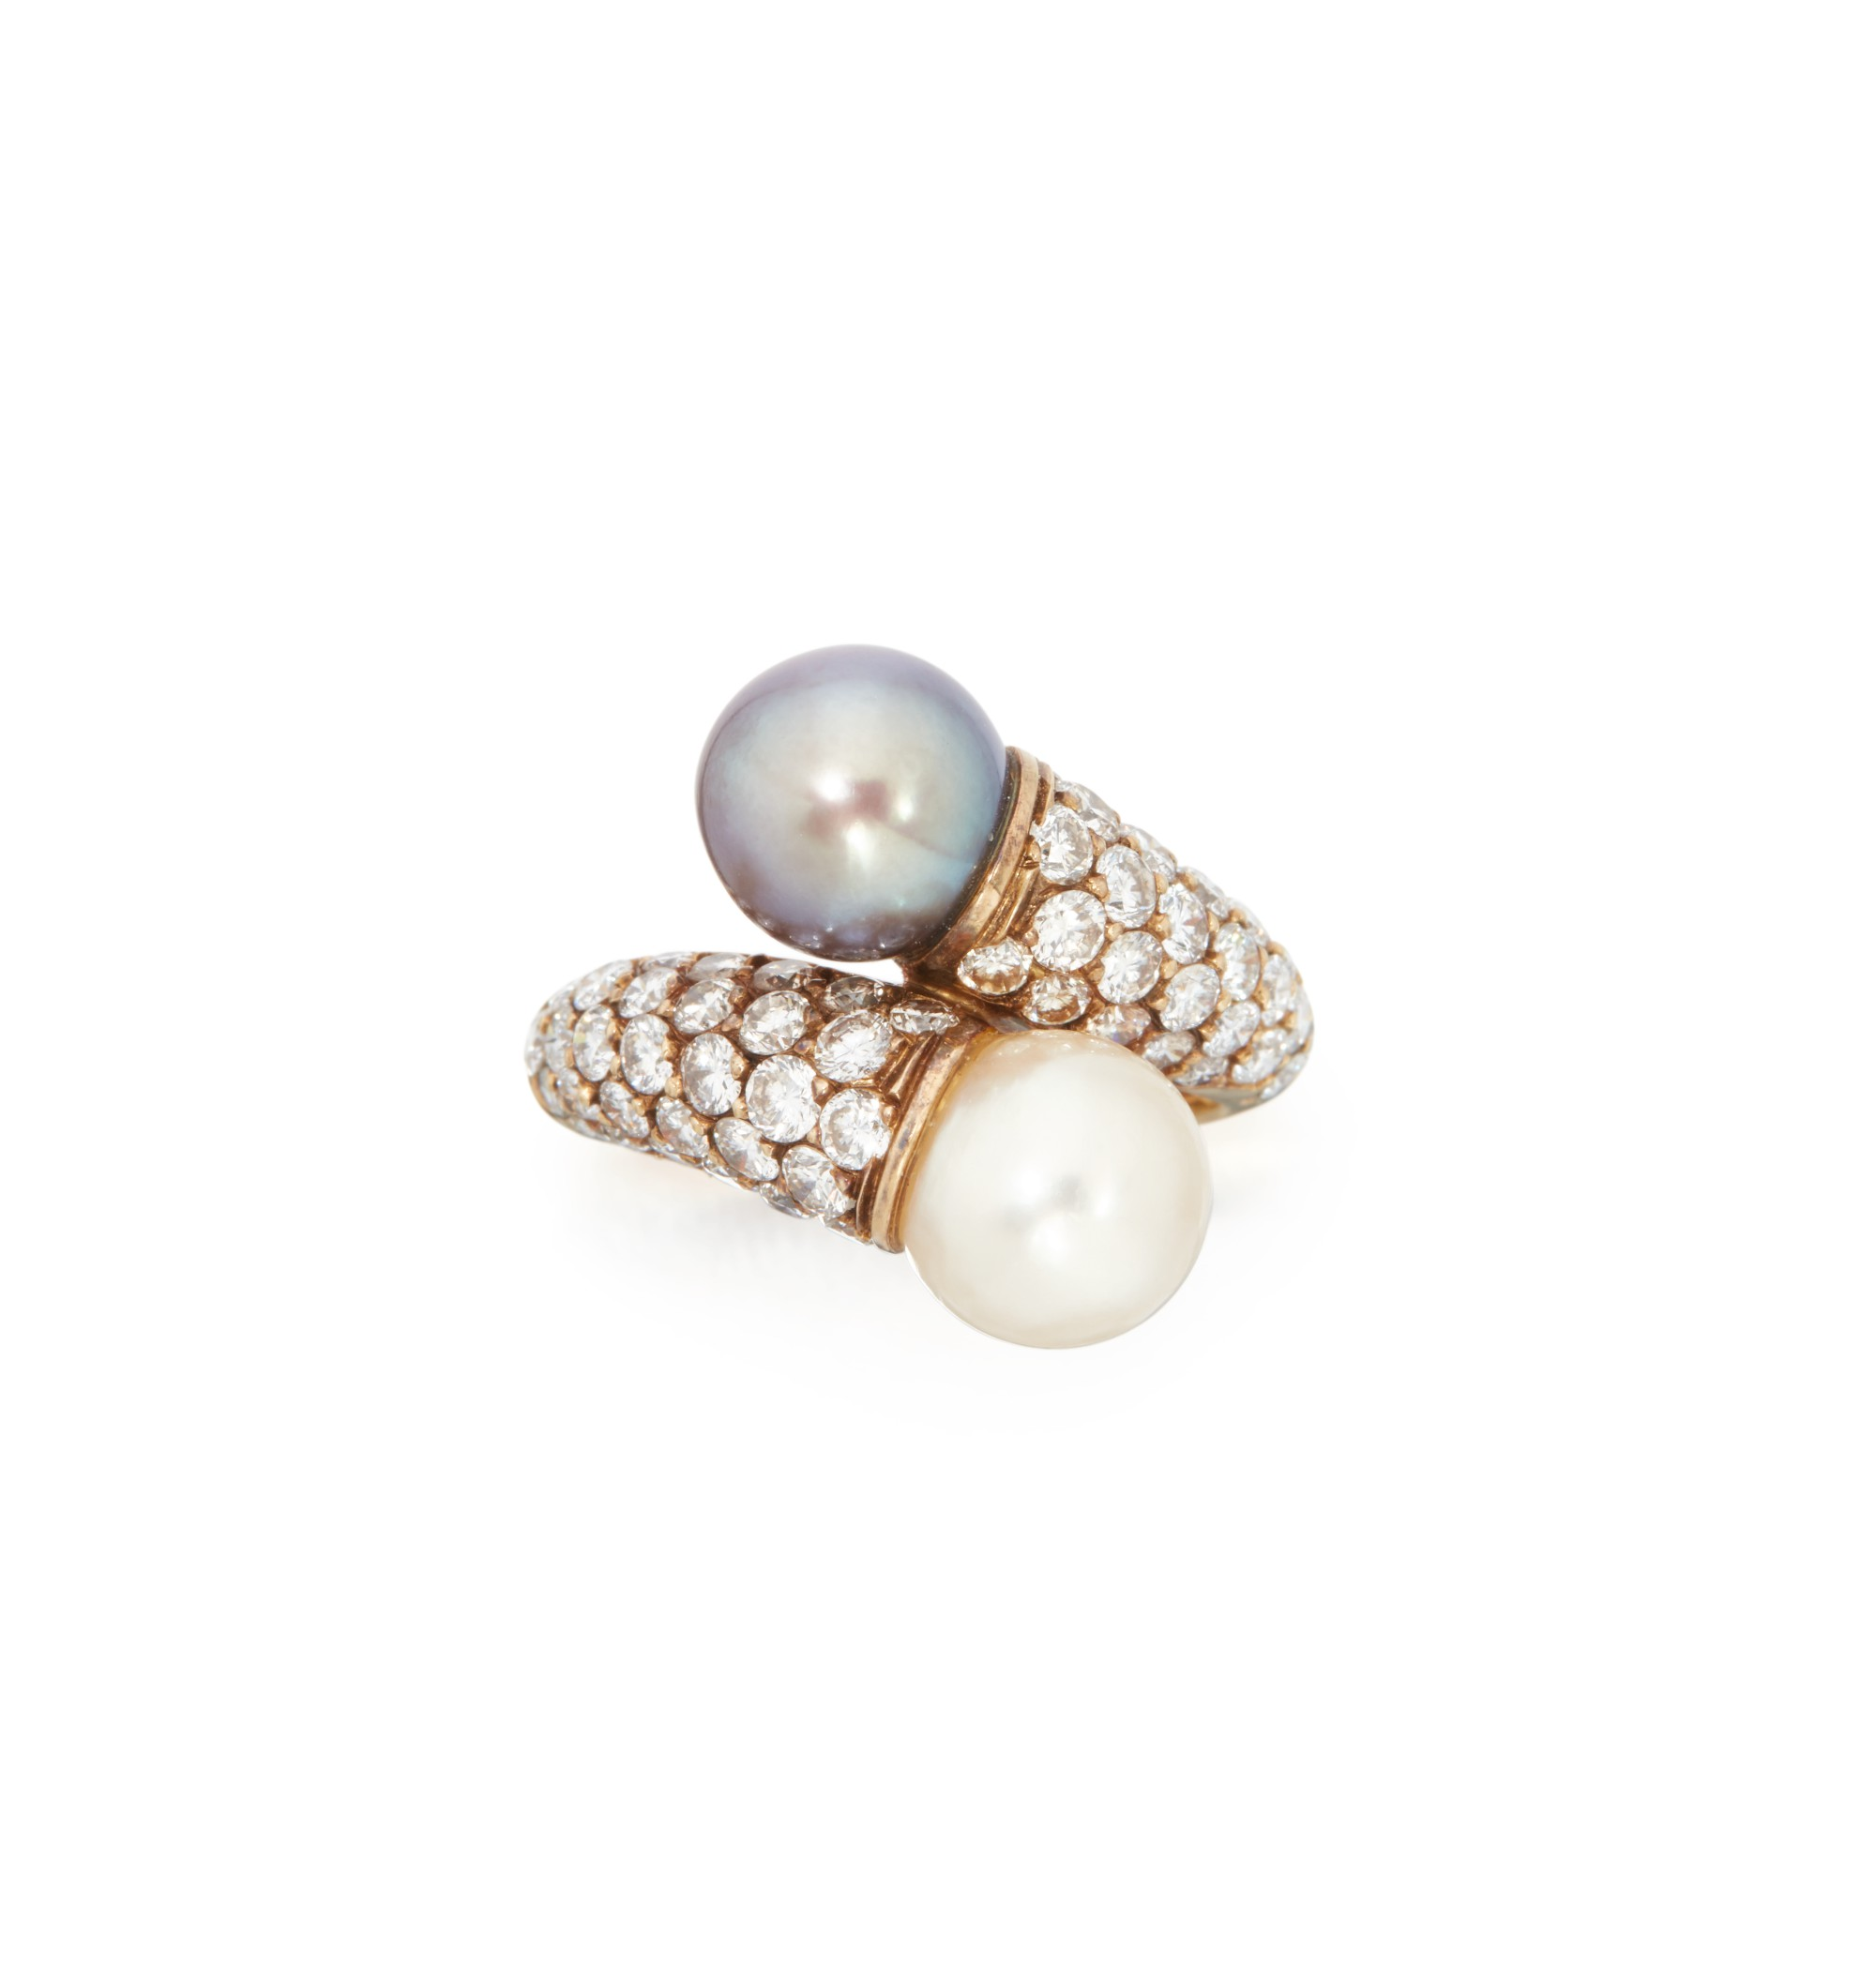 CULTURED PEARL AND DIAMOND RING, VAN CLEEF & ARPELS, FRANCE